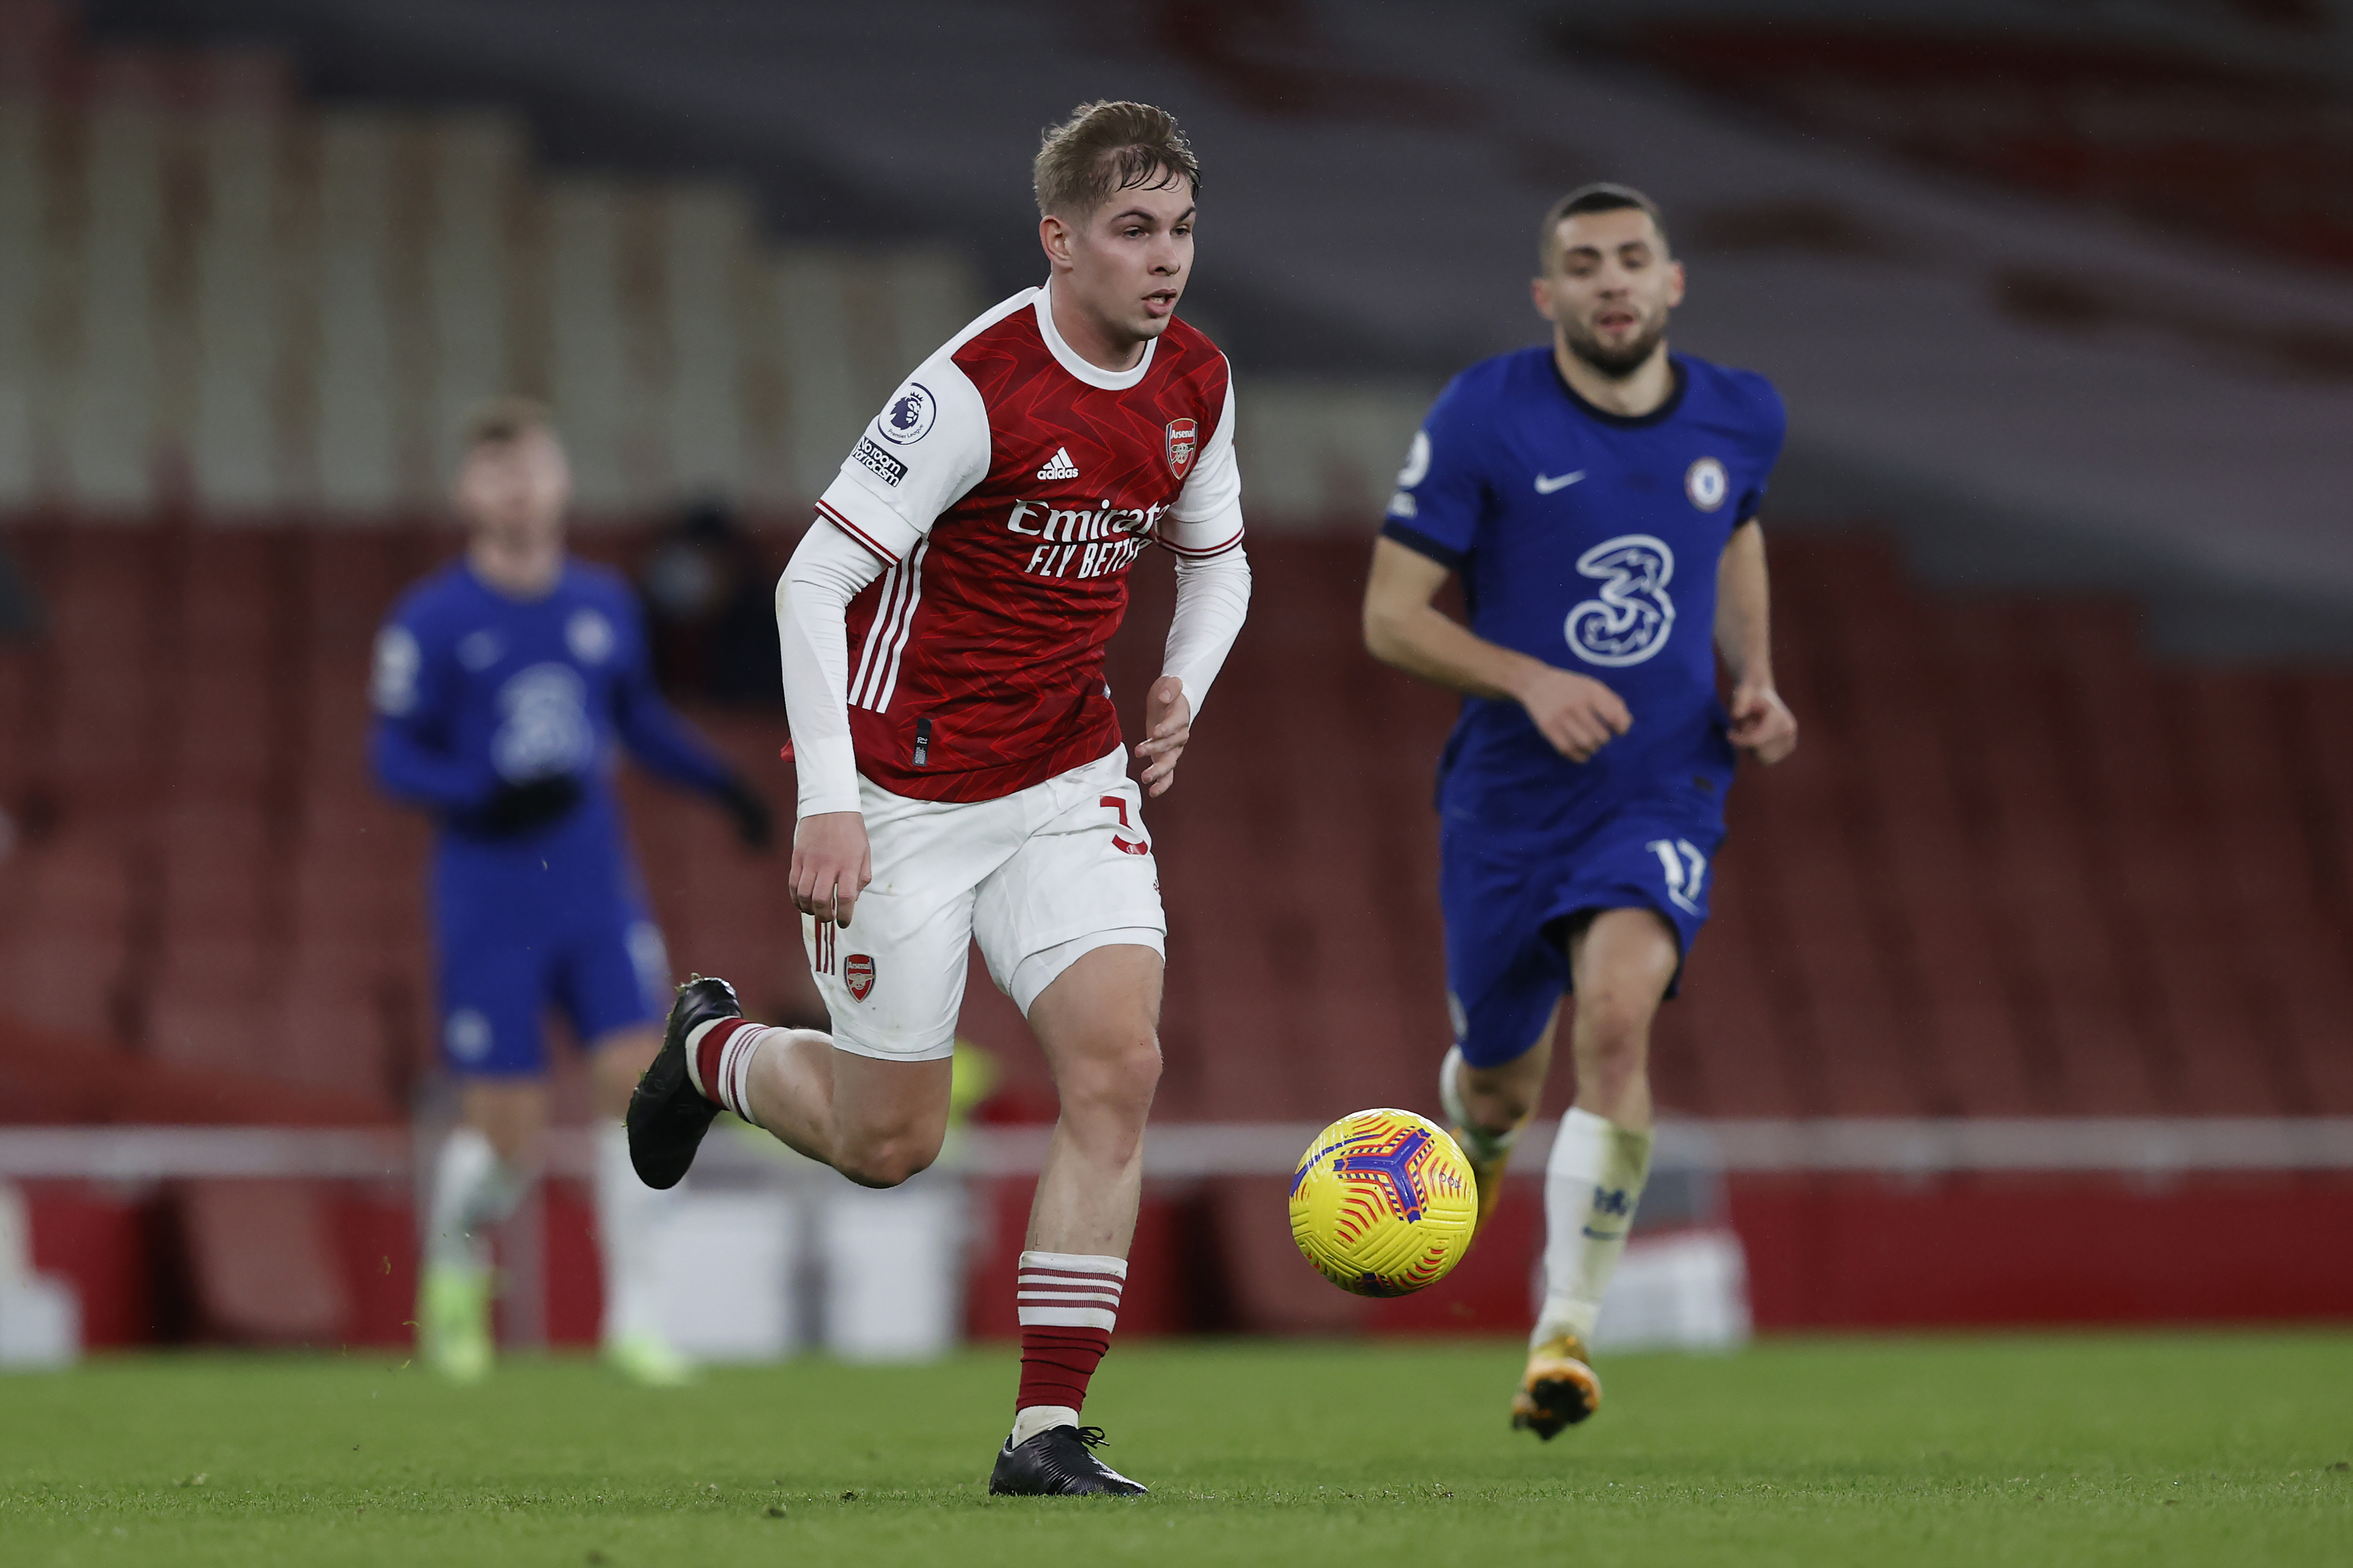 Mikel Arteta Arsenal Need A Player As Talented As Emile Smith Rowe Fourfourtwo